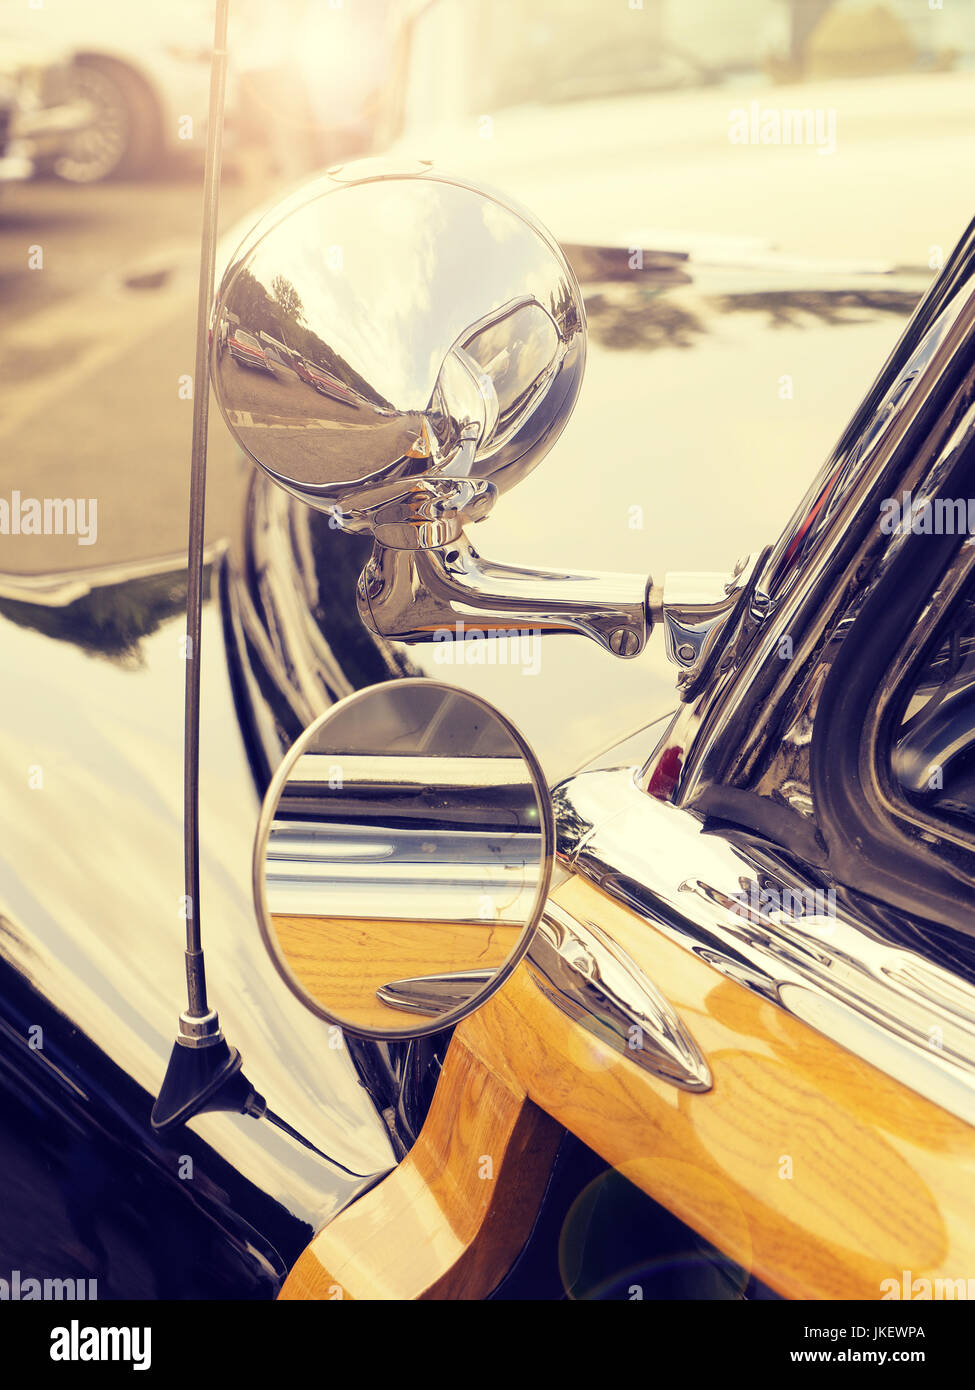 Detail of an old American vintage car on a sunny summer day, lifestyle background retro film stylized - Stock Image